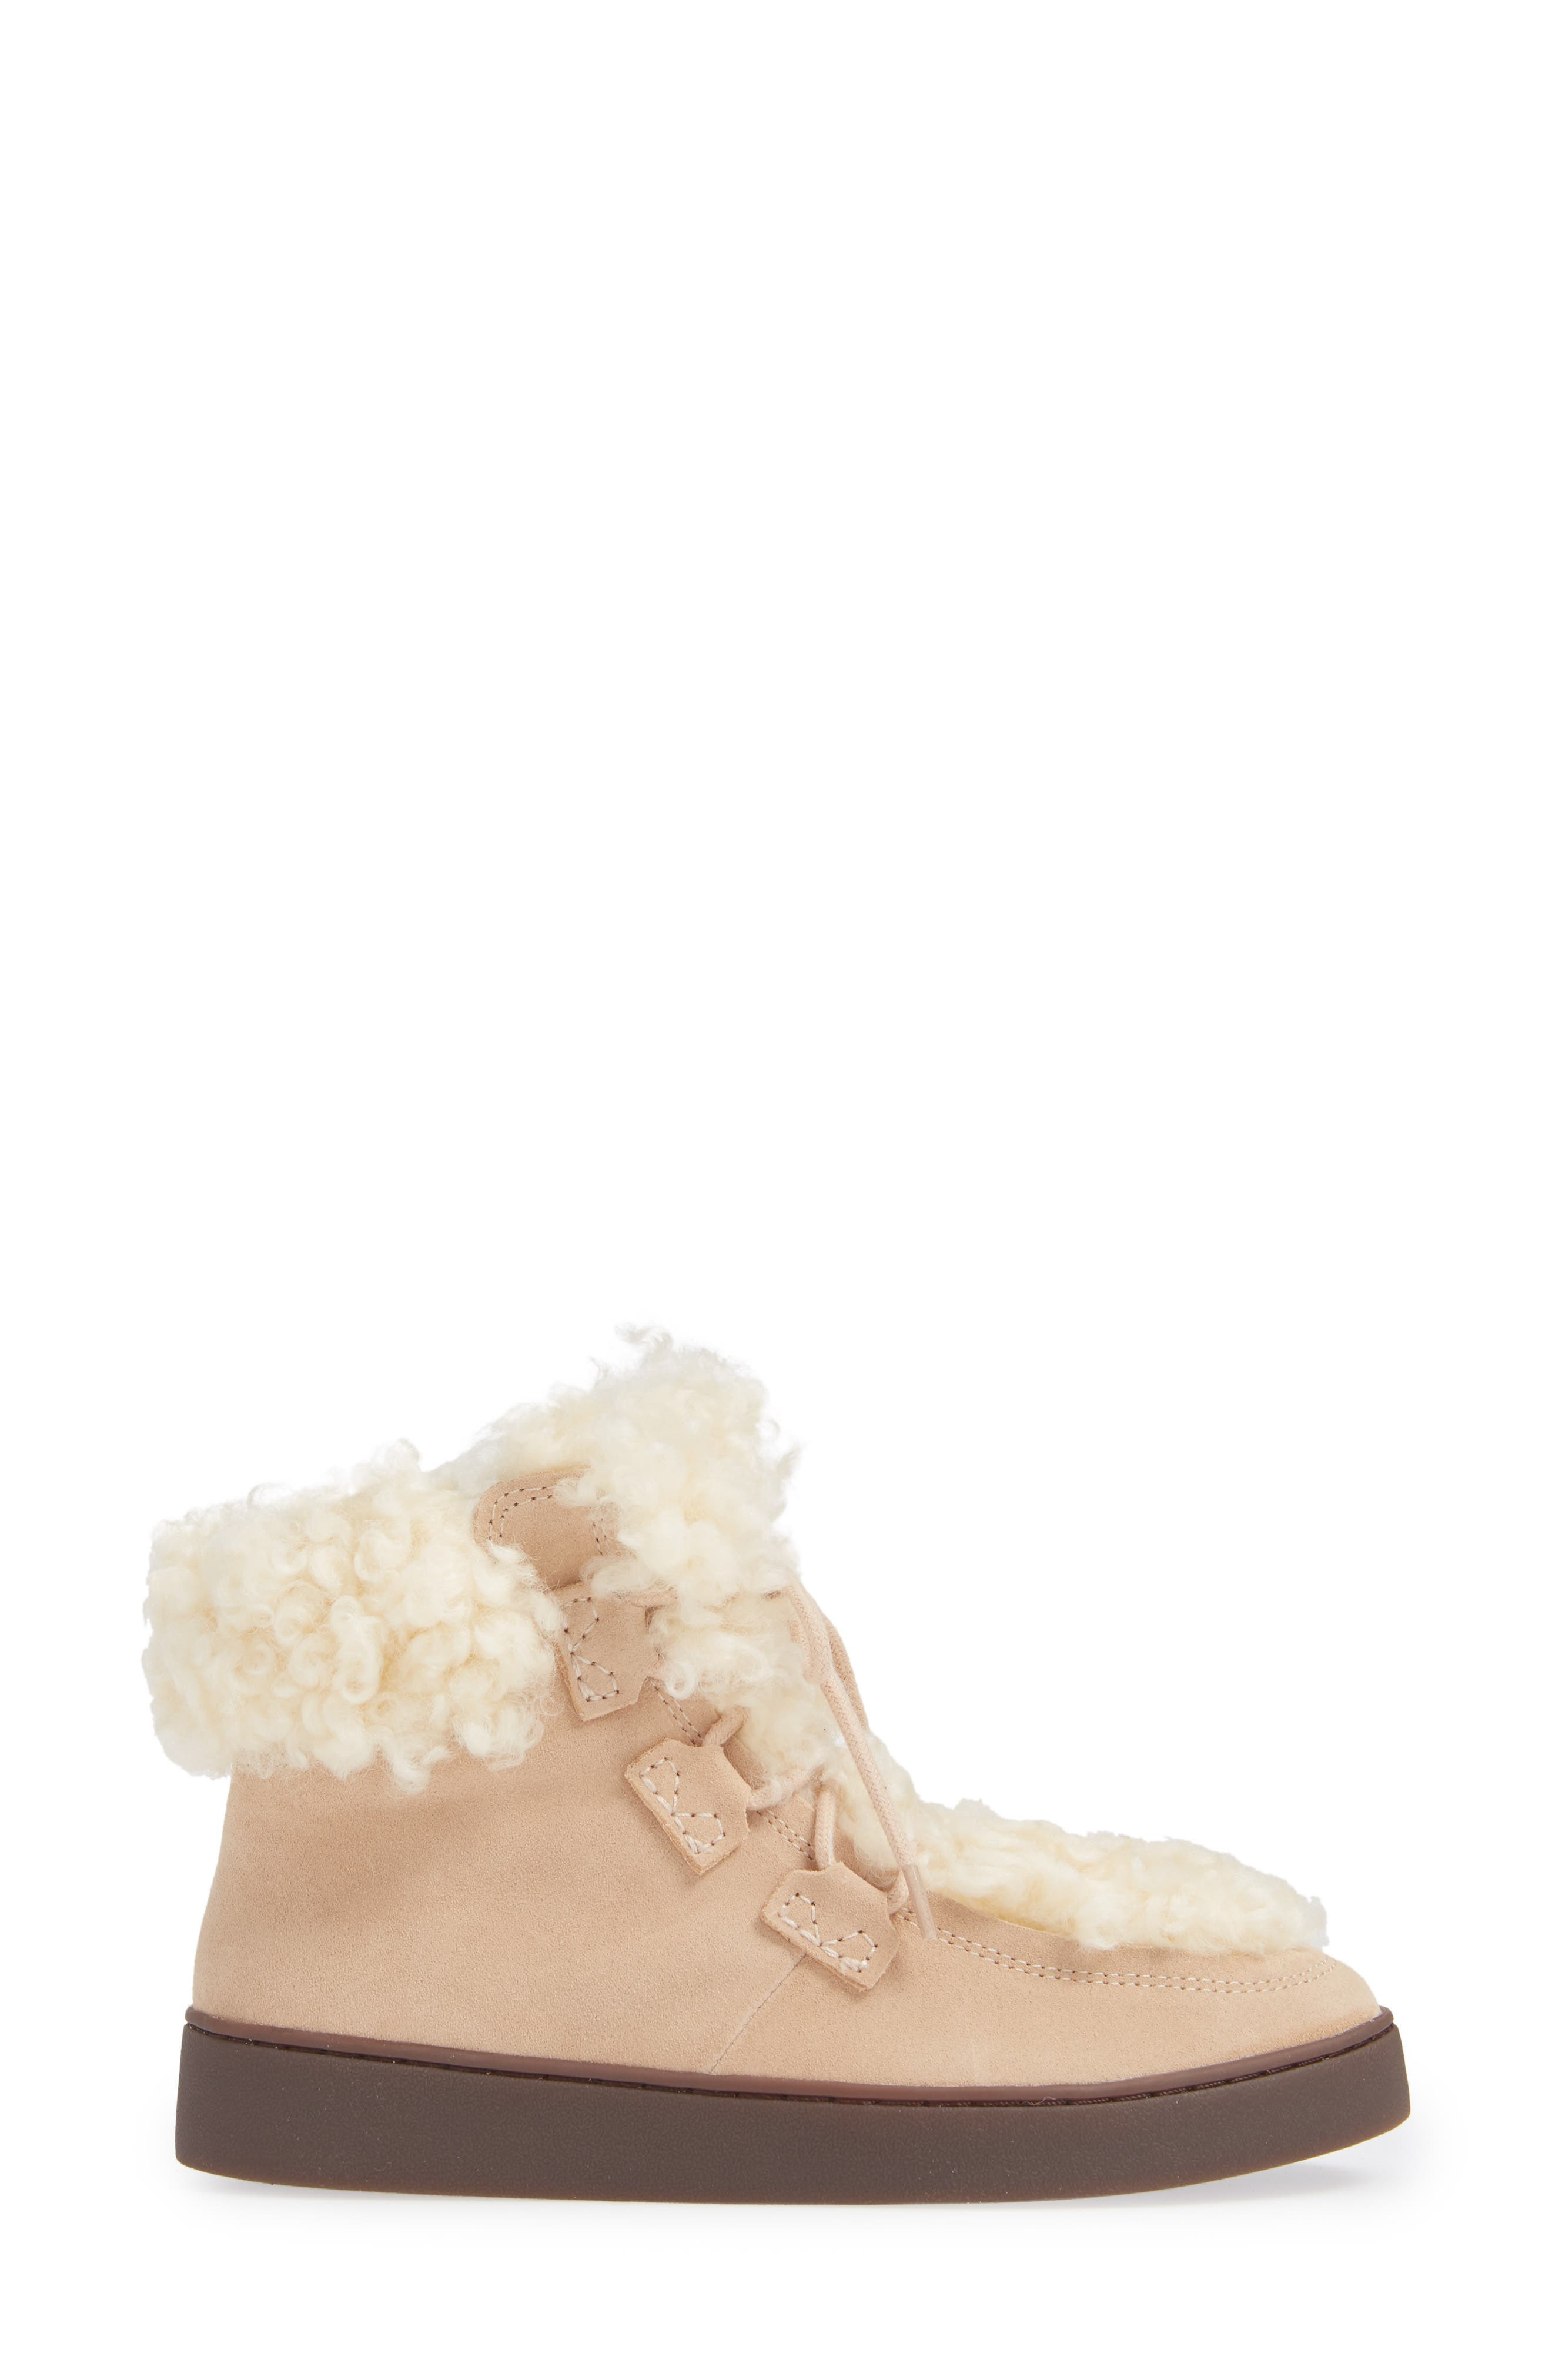 Oak Genuine Shearling Cuff Sneaker Bootie,                             Alternate thumbnail 3, color,                             SAND SUEDE